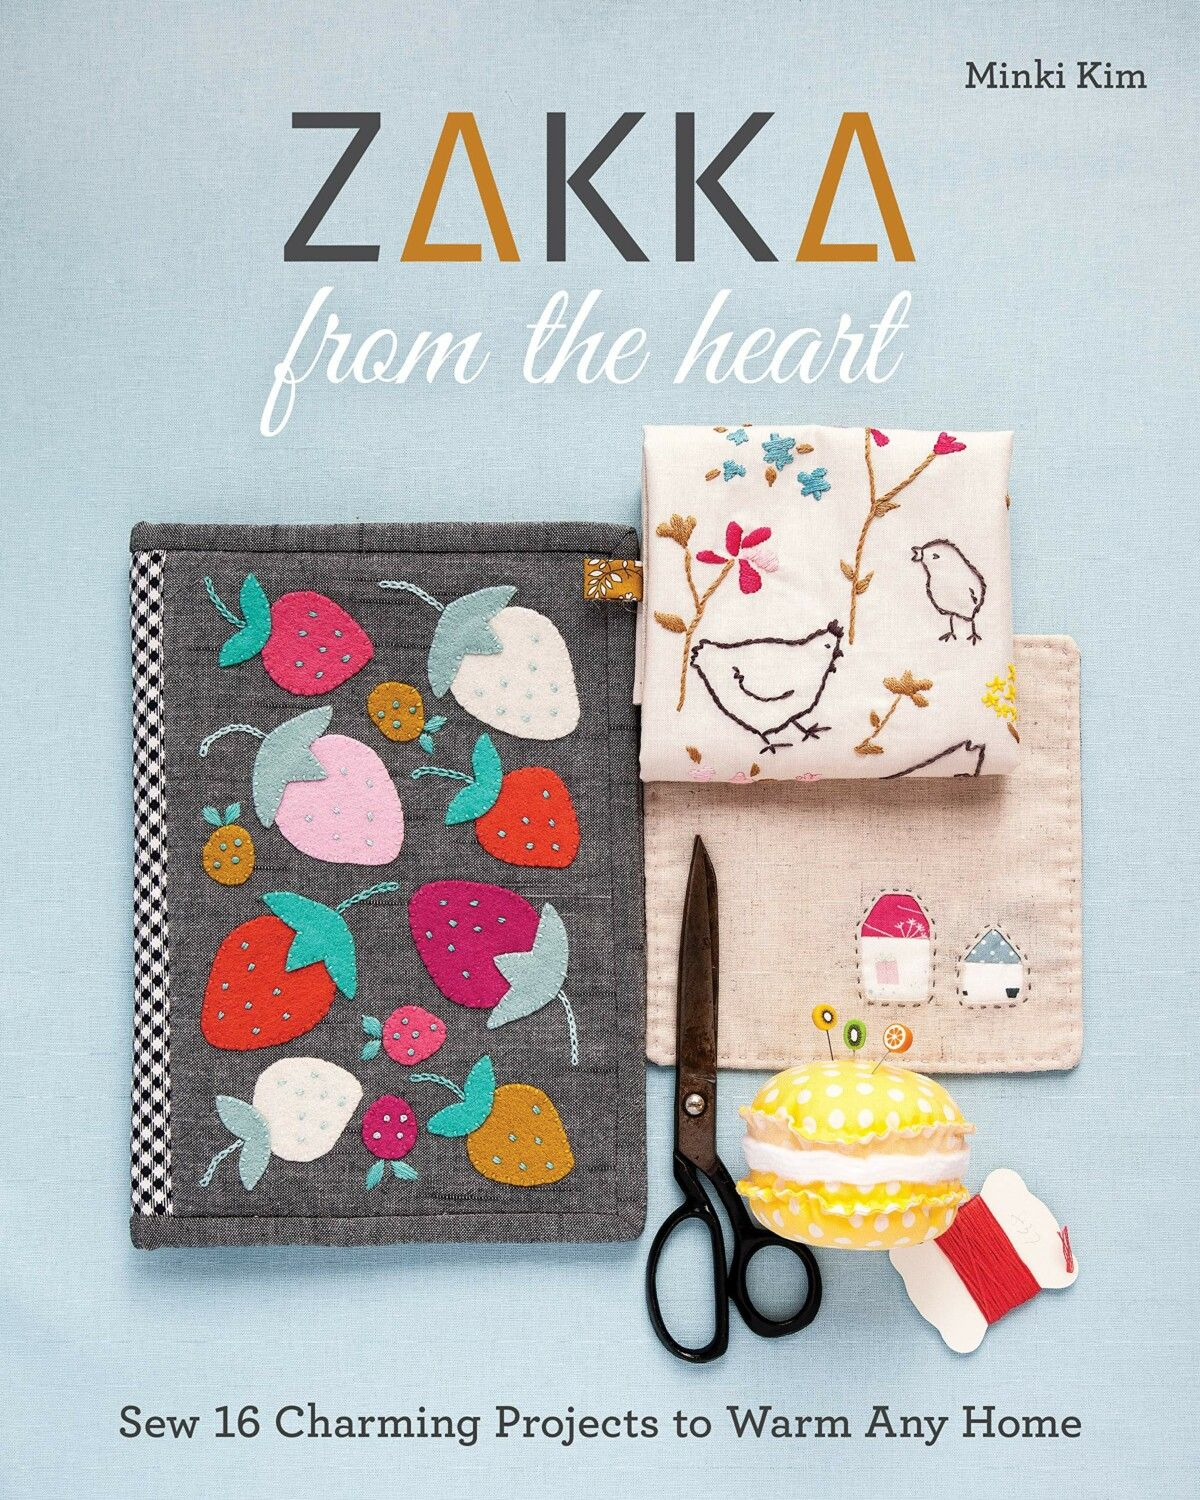 Diy Cosmetic Zipper Pouch Sewing Projects Embroidery Book Sewing